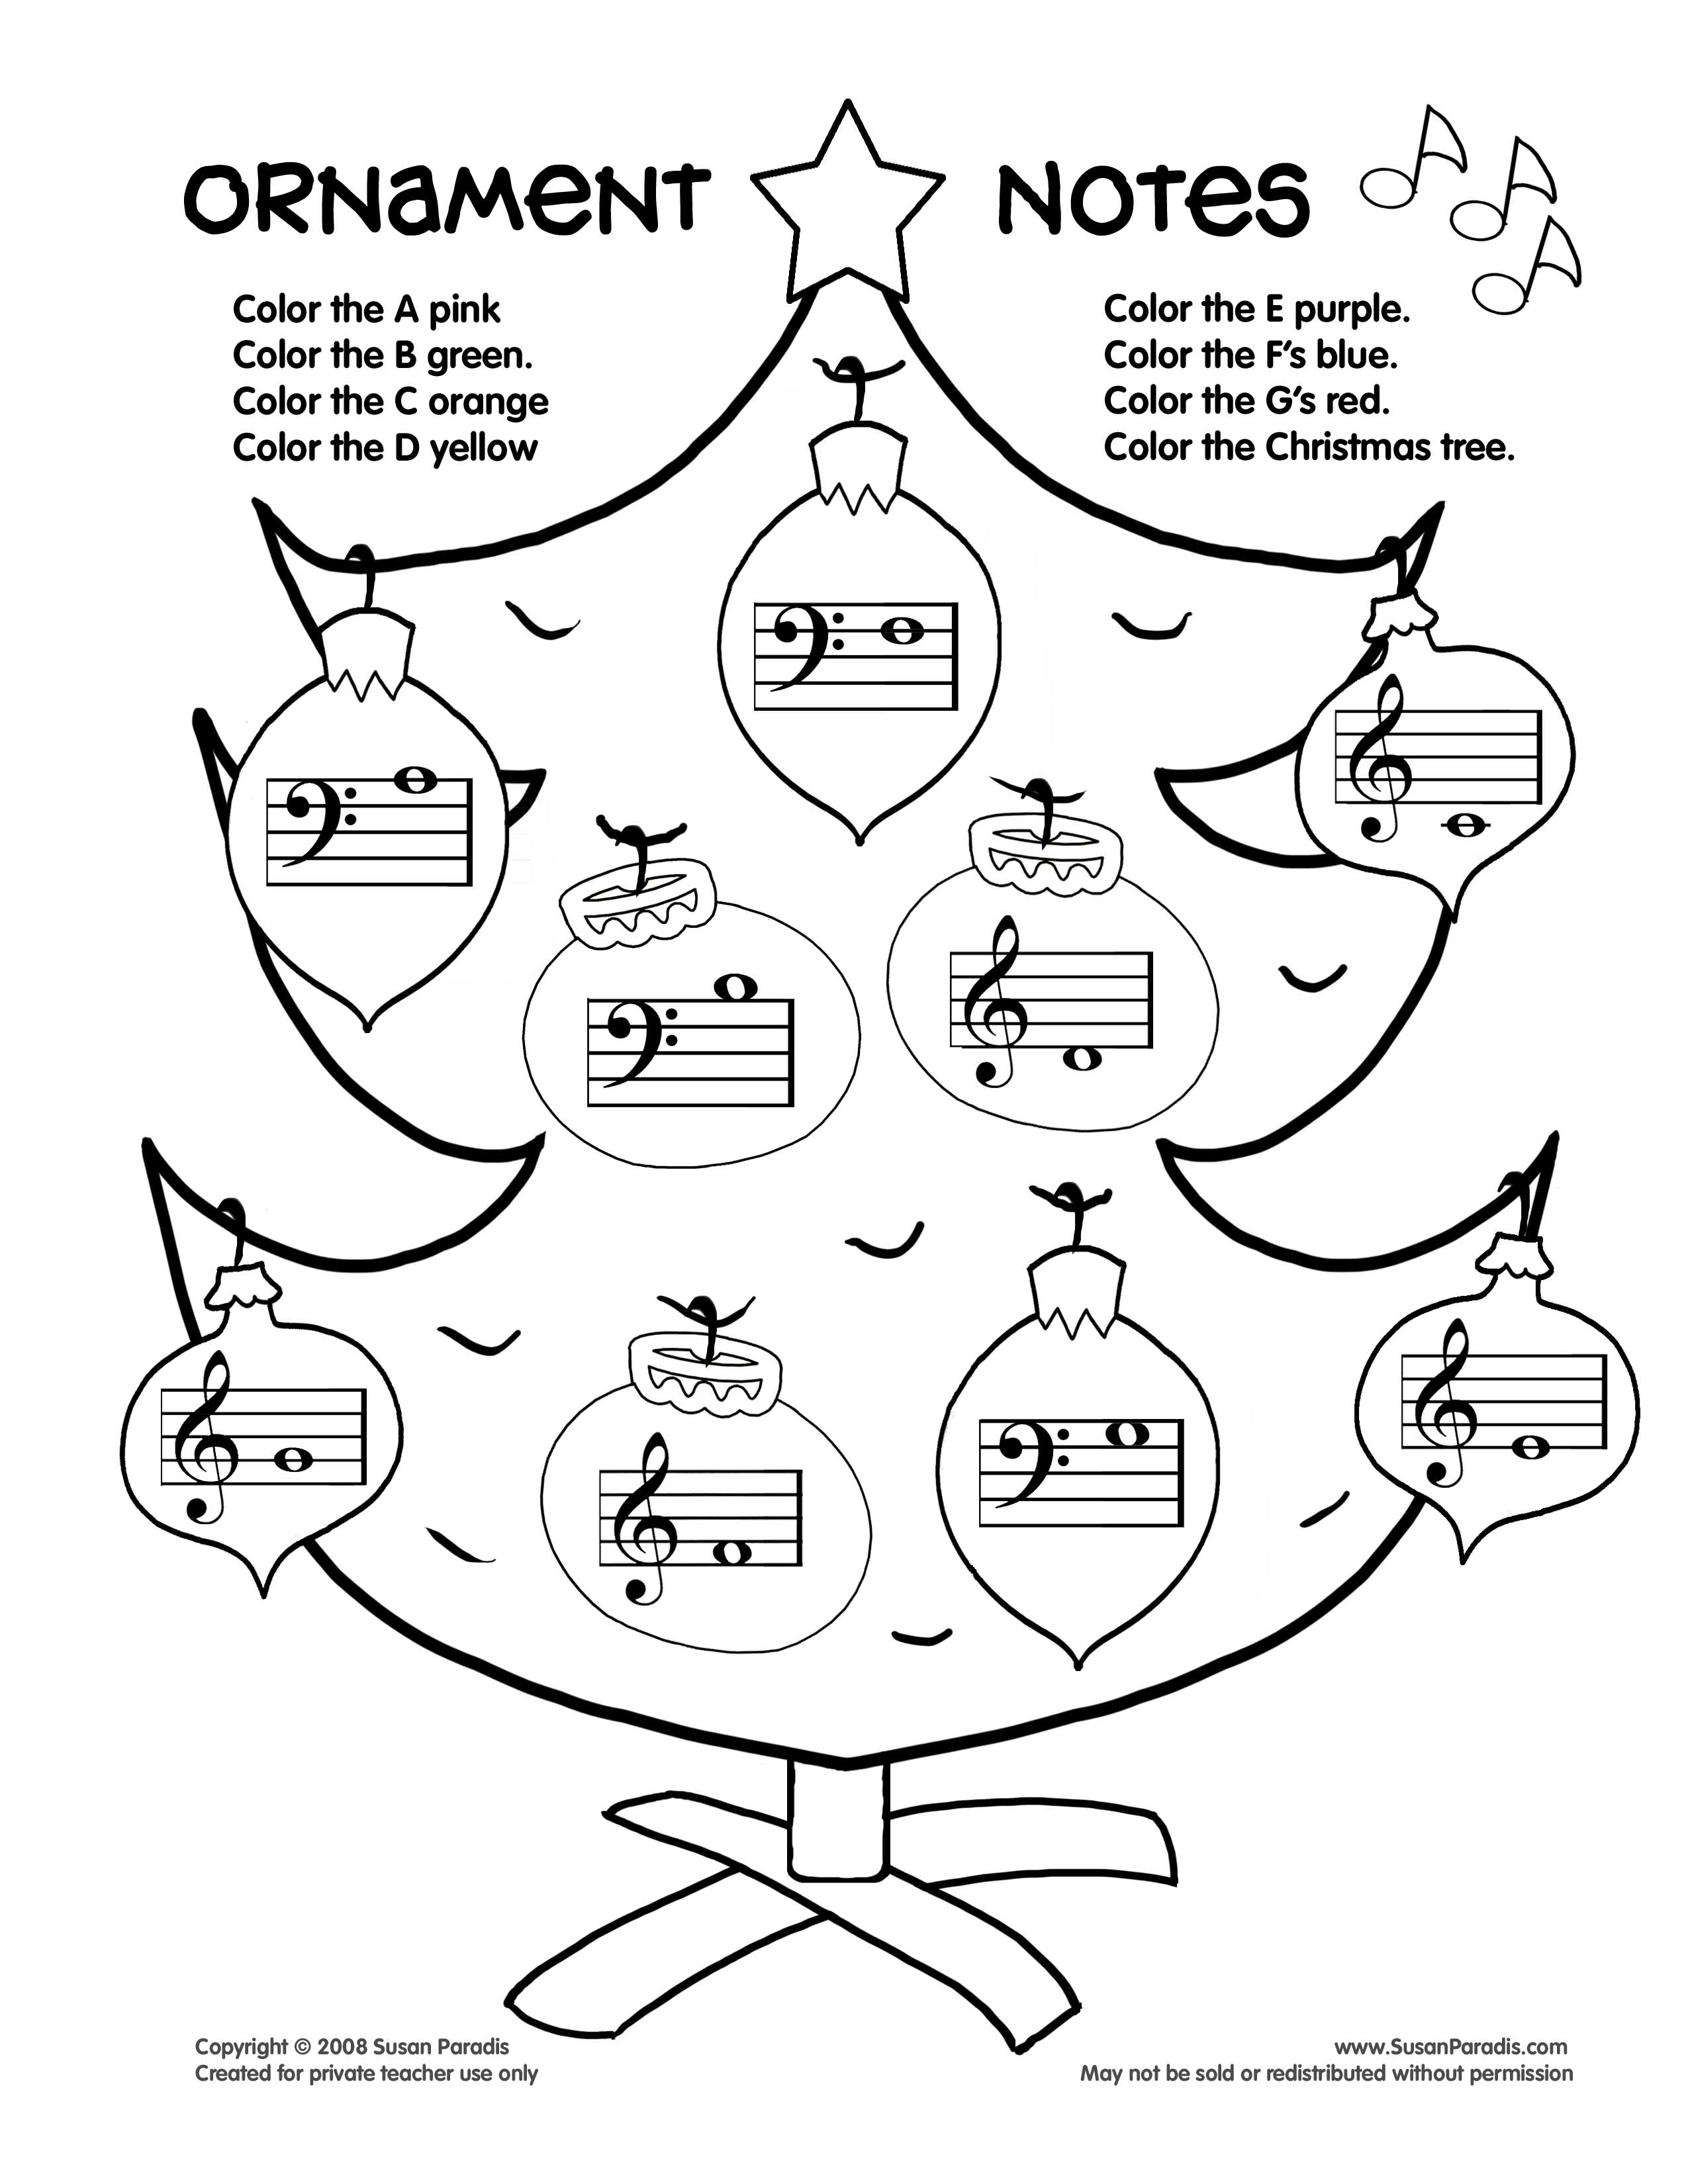 Music Notes Coloring Pages Preschoolers at GetDrawings.com